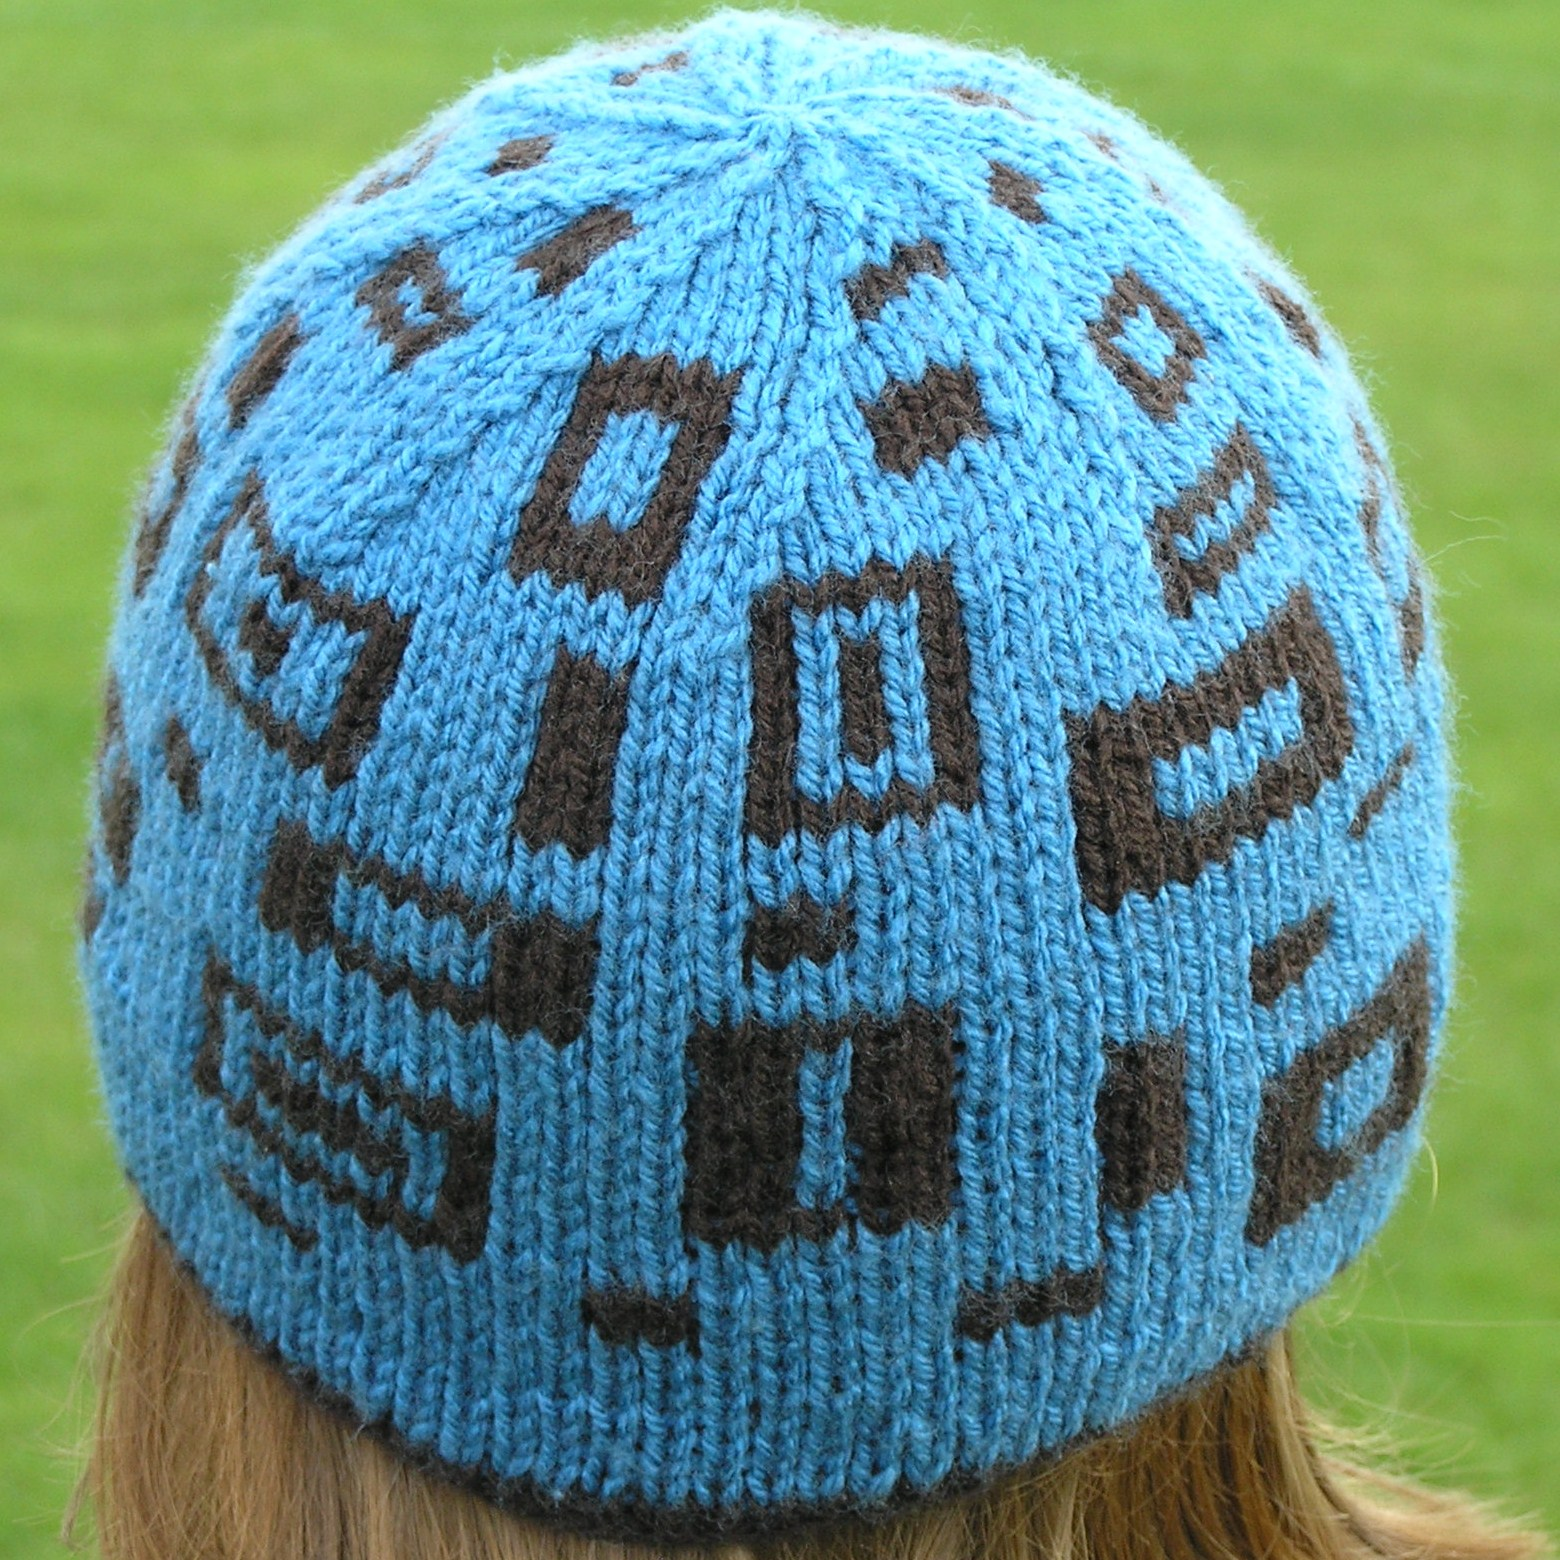 Double Knitting In The Round Hat : Moved permanently